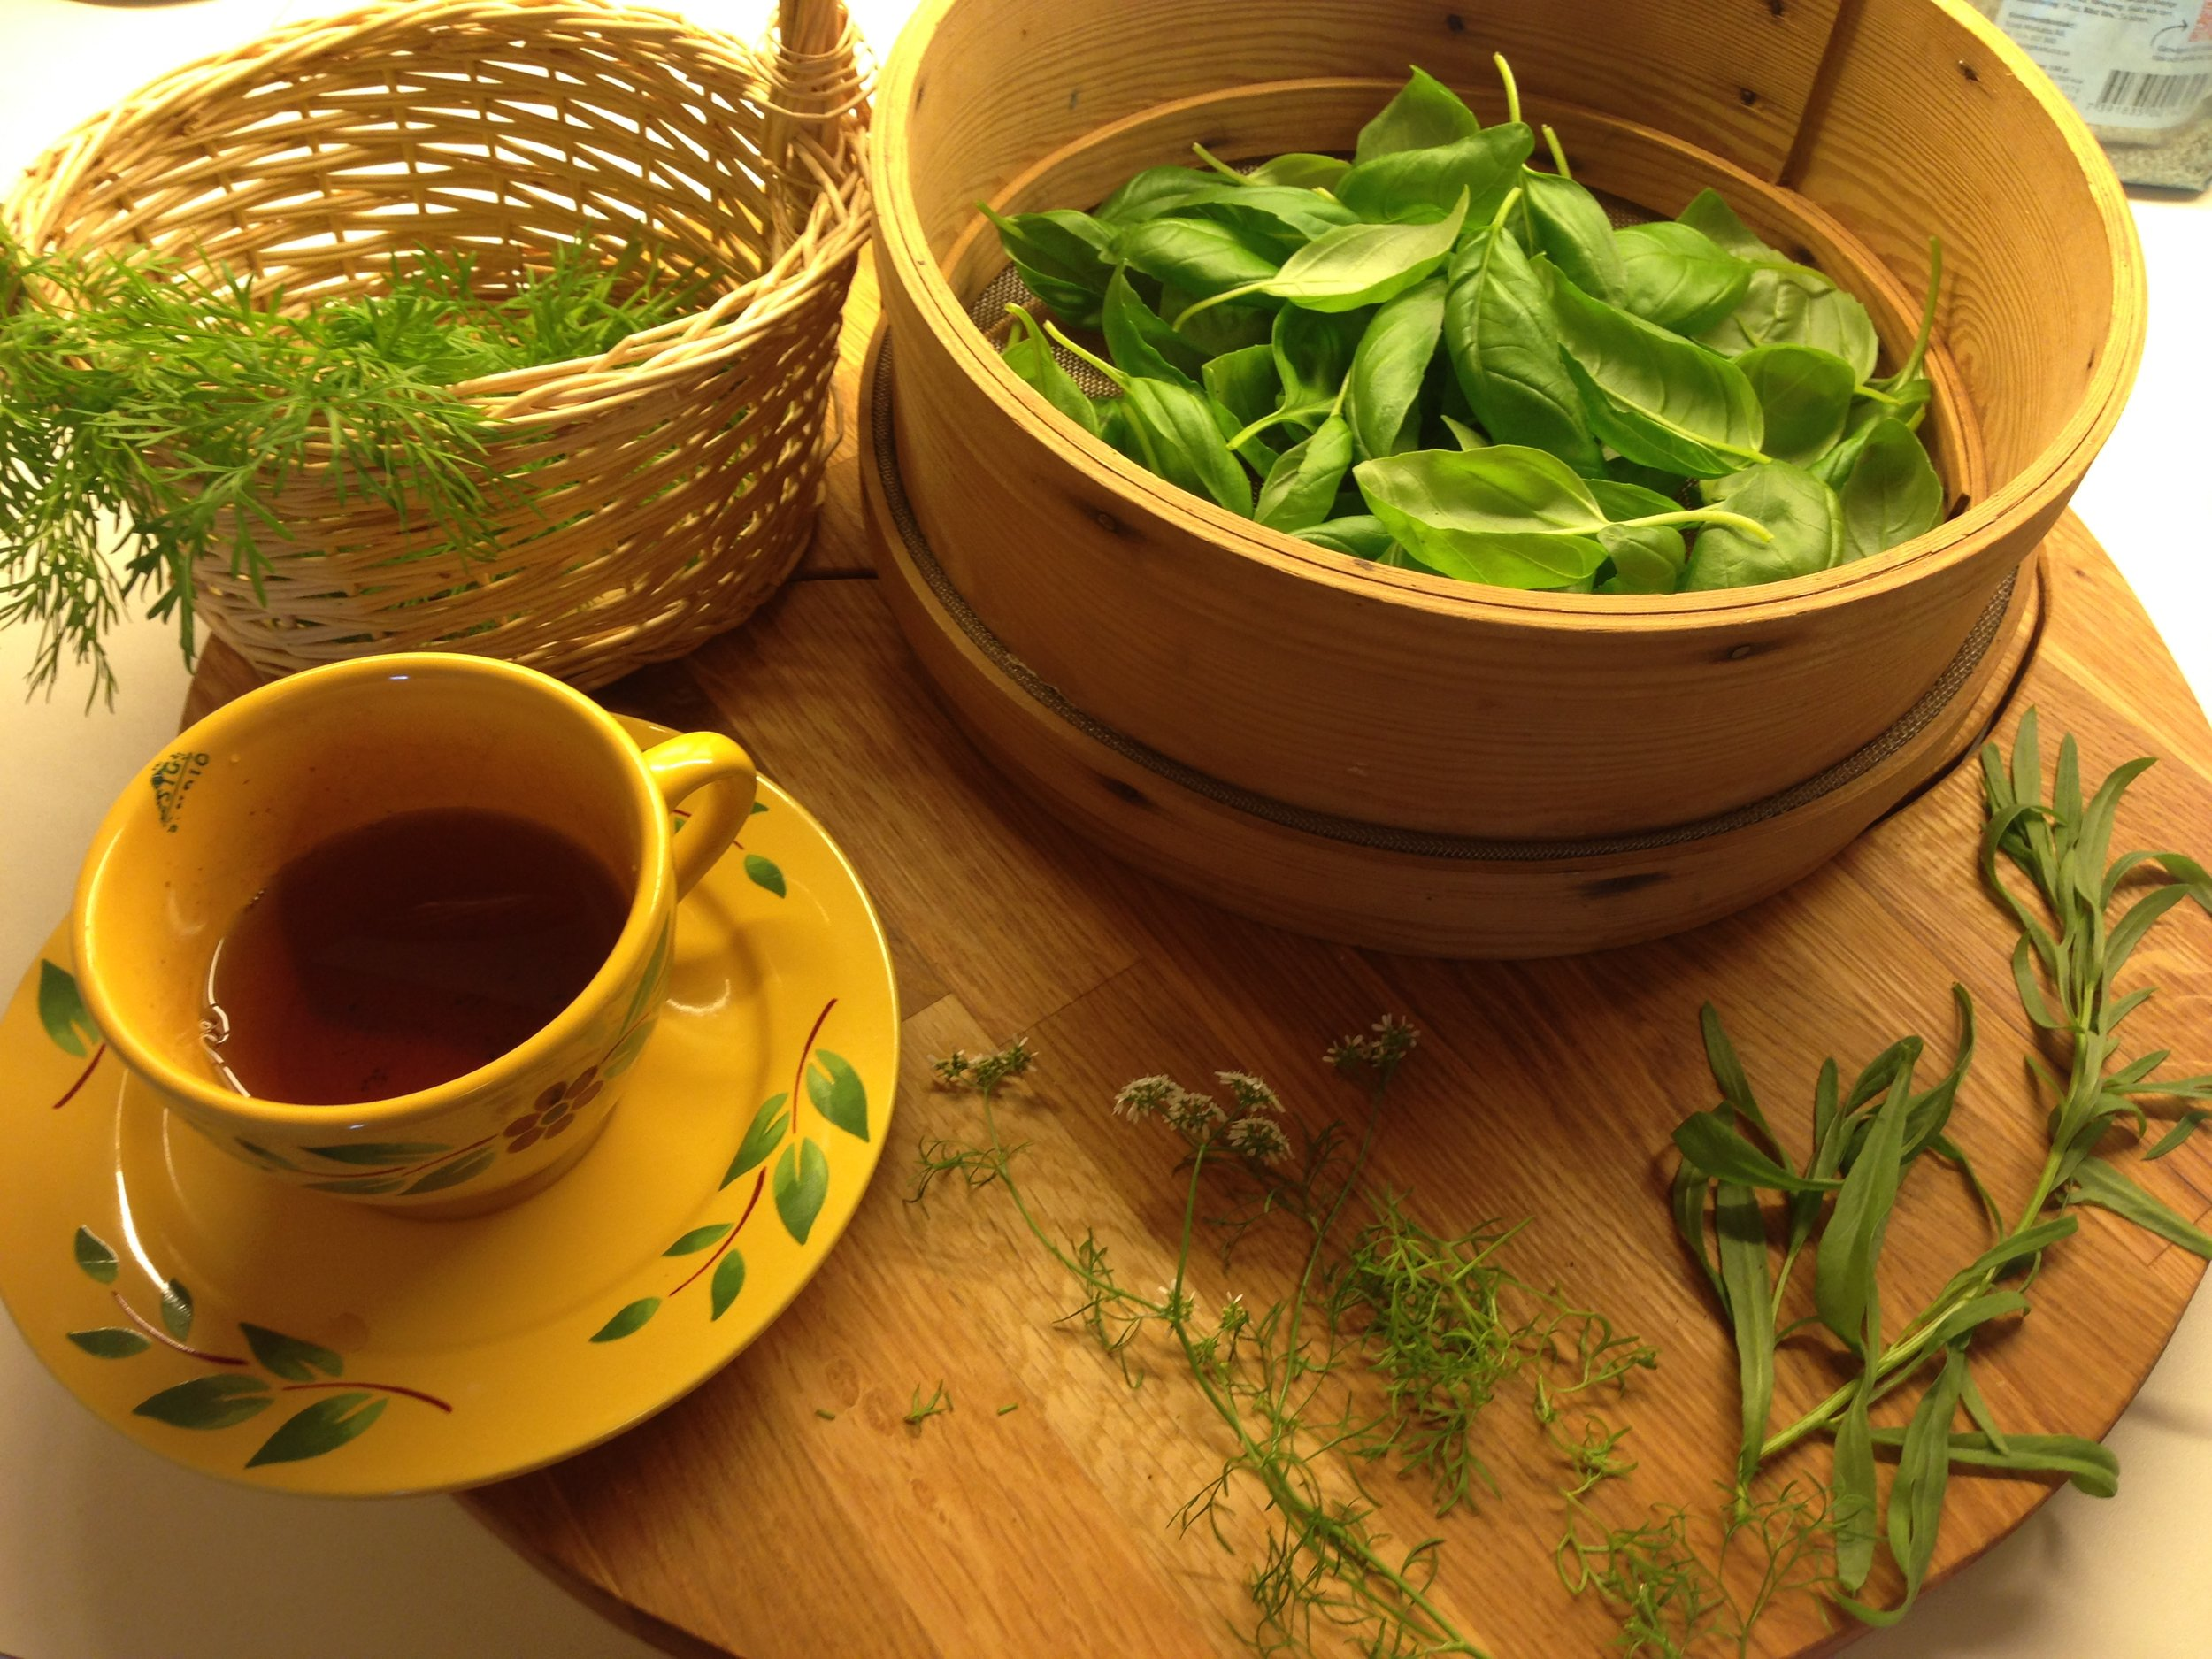 The picture shows basil tea